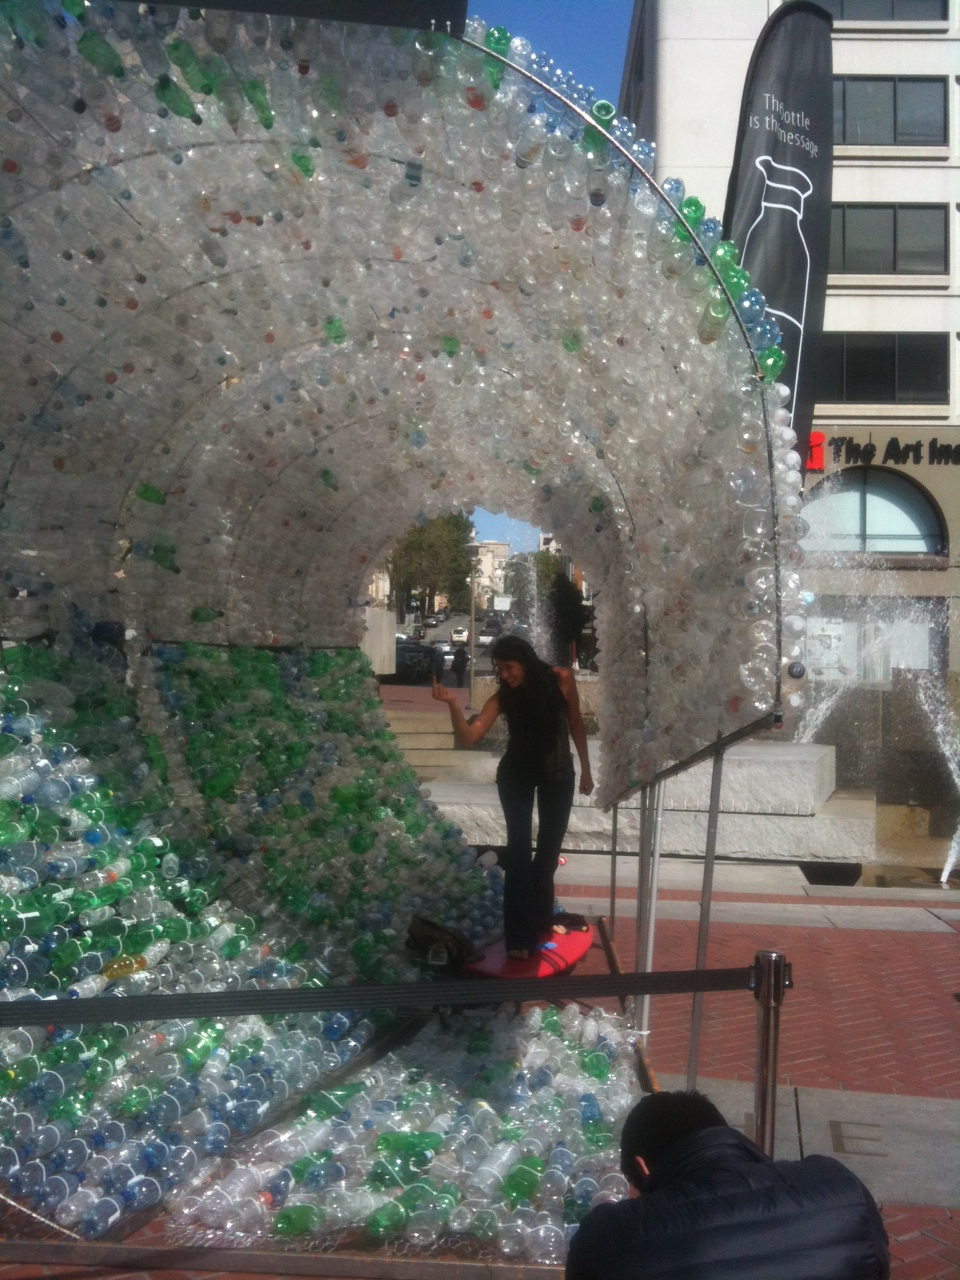 UN Plaza Hit With Plastic Wave